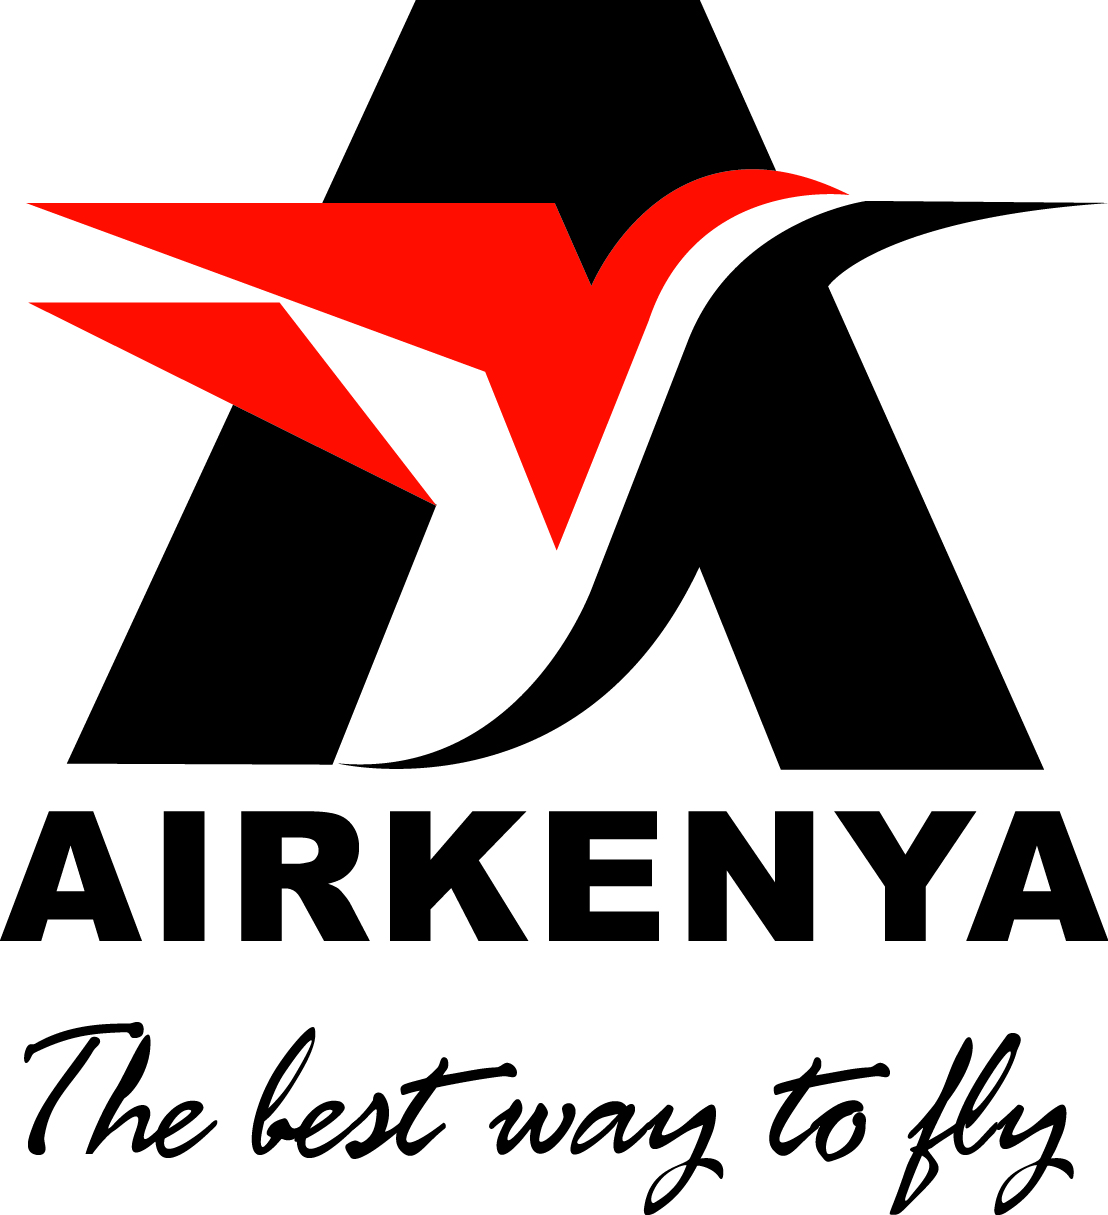 Air Kenya collaborates with the Samburu Project